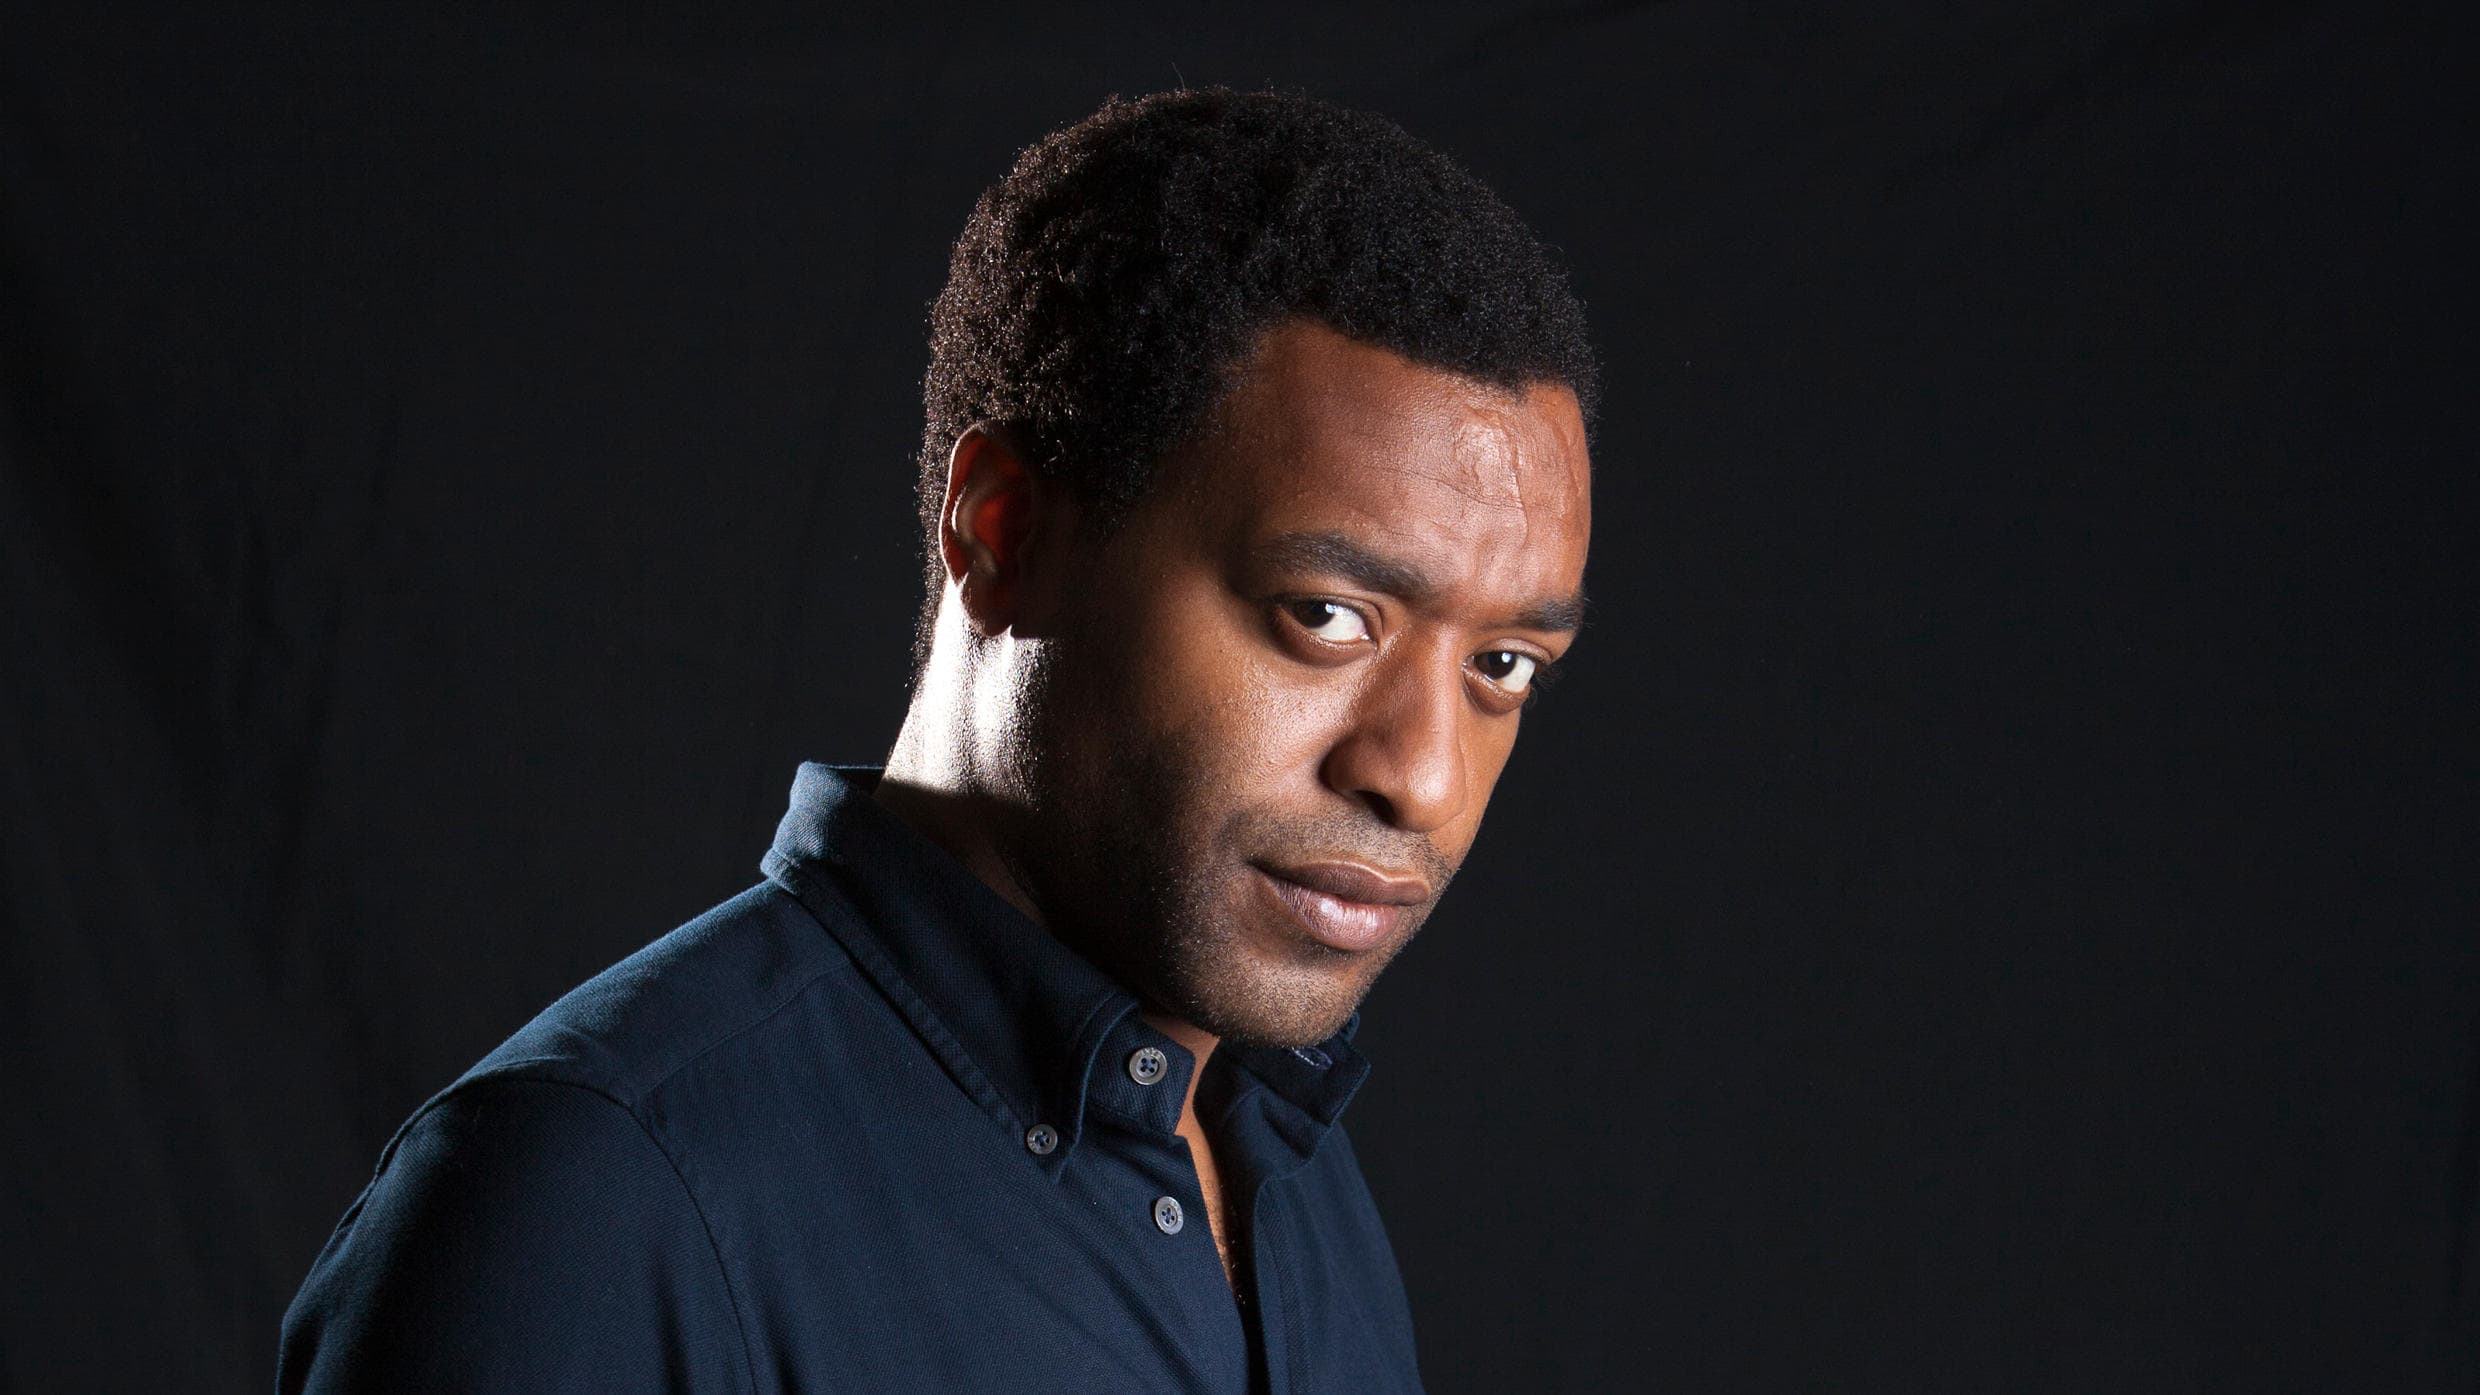 Chiwetel Ejiofor HQ wallpapers